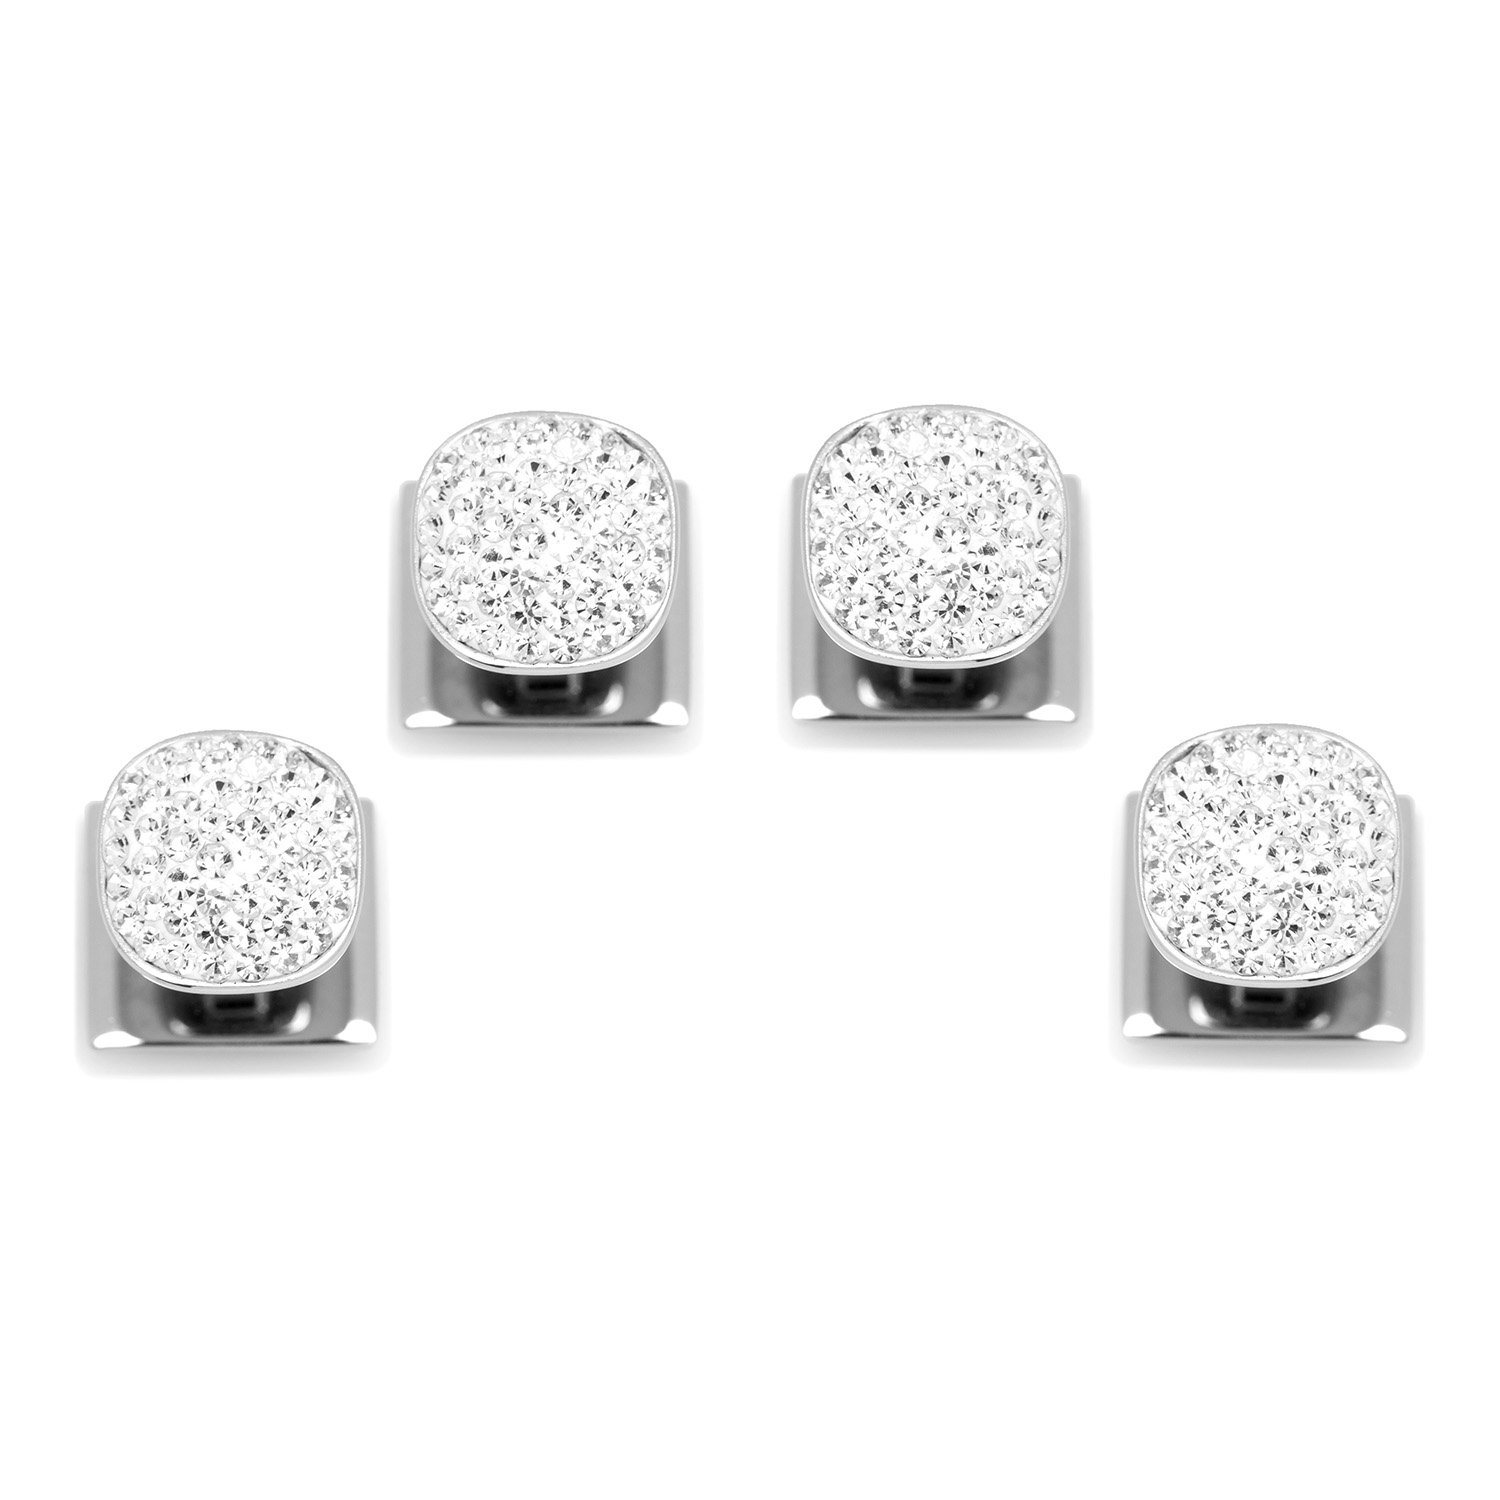 Ox and Bull Trading Co. White Pave Crystal Studs